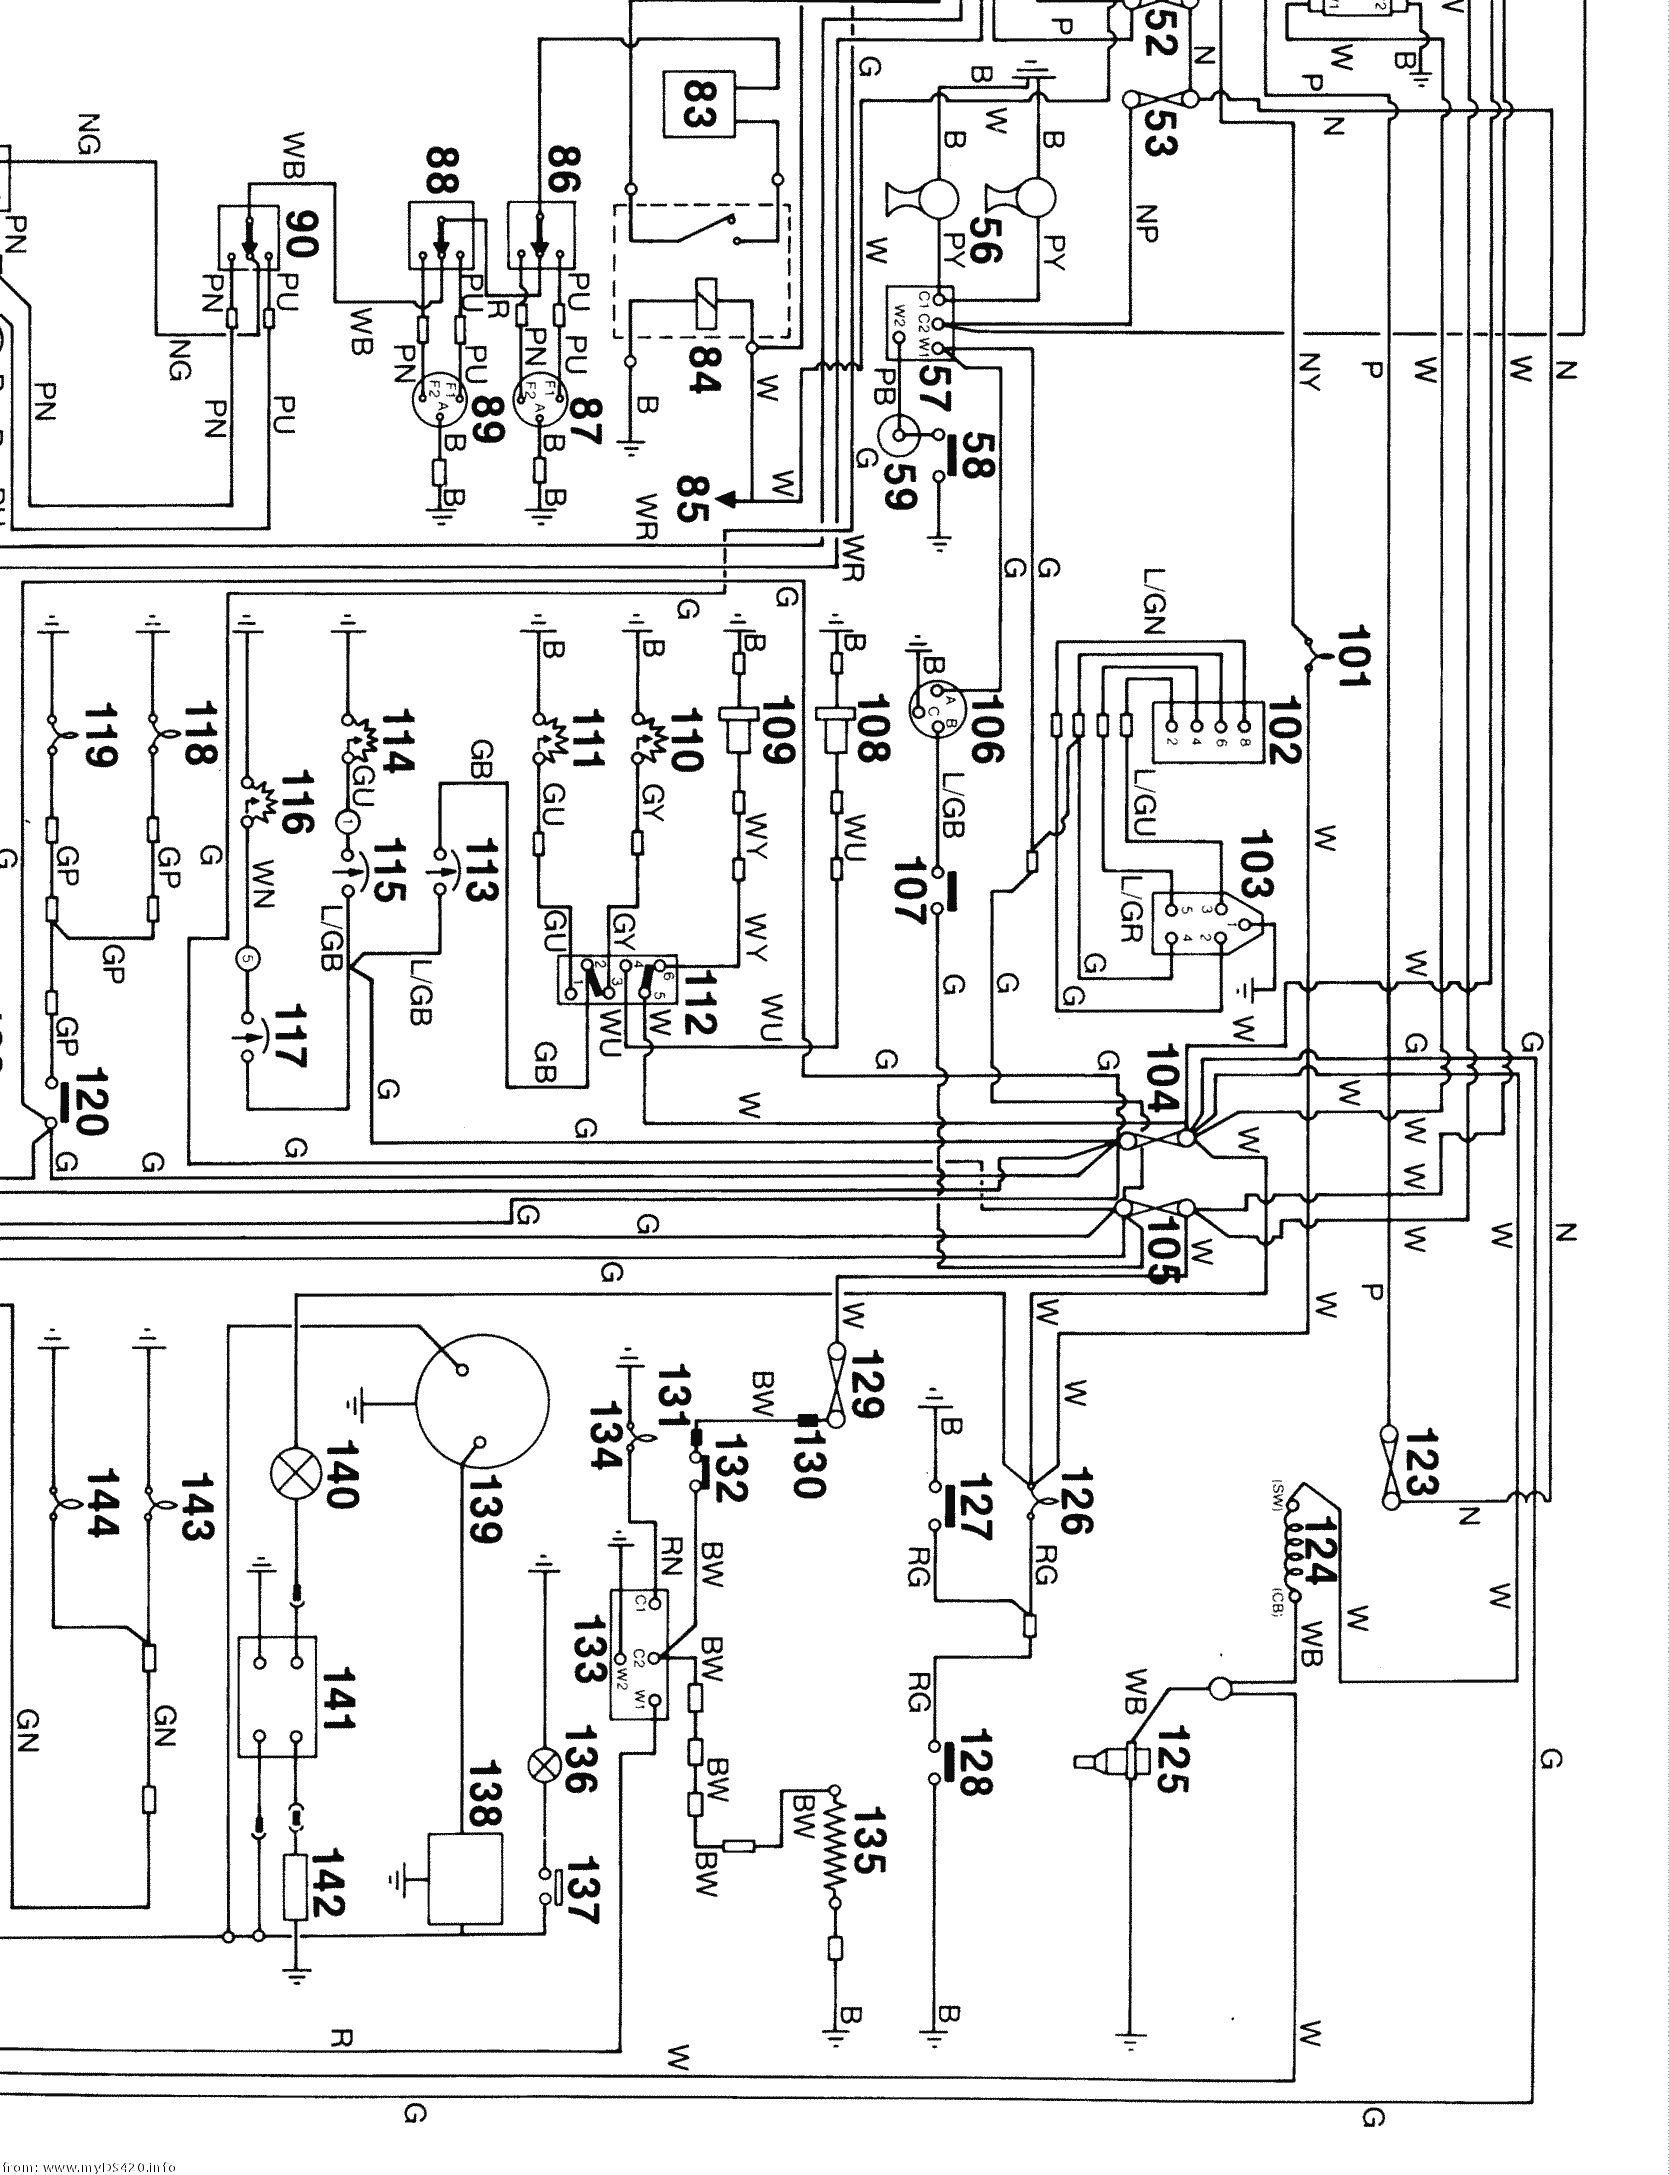 Xr200 wiring diagram